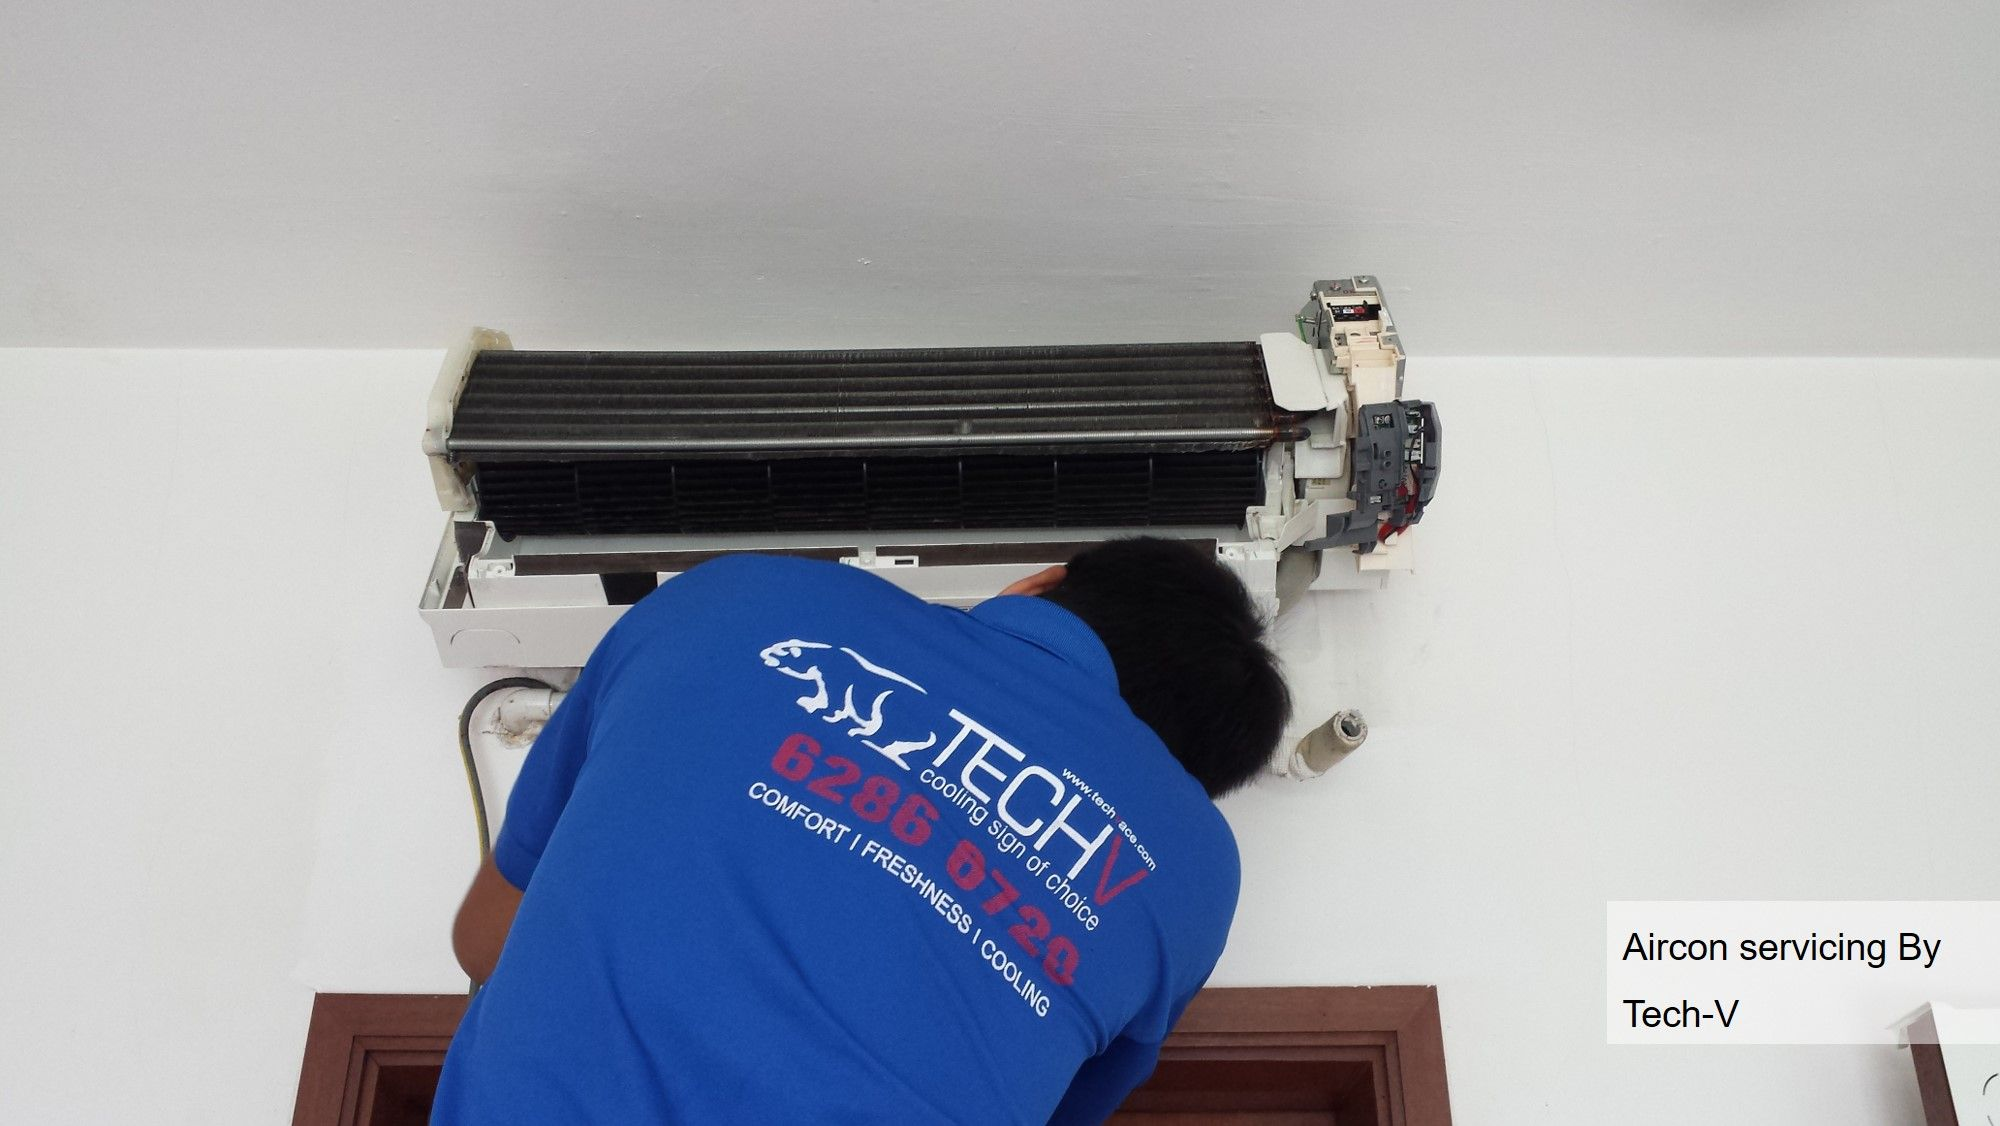 Is your aircon having water leaking issues? When was